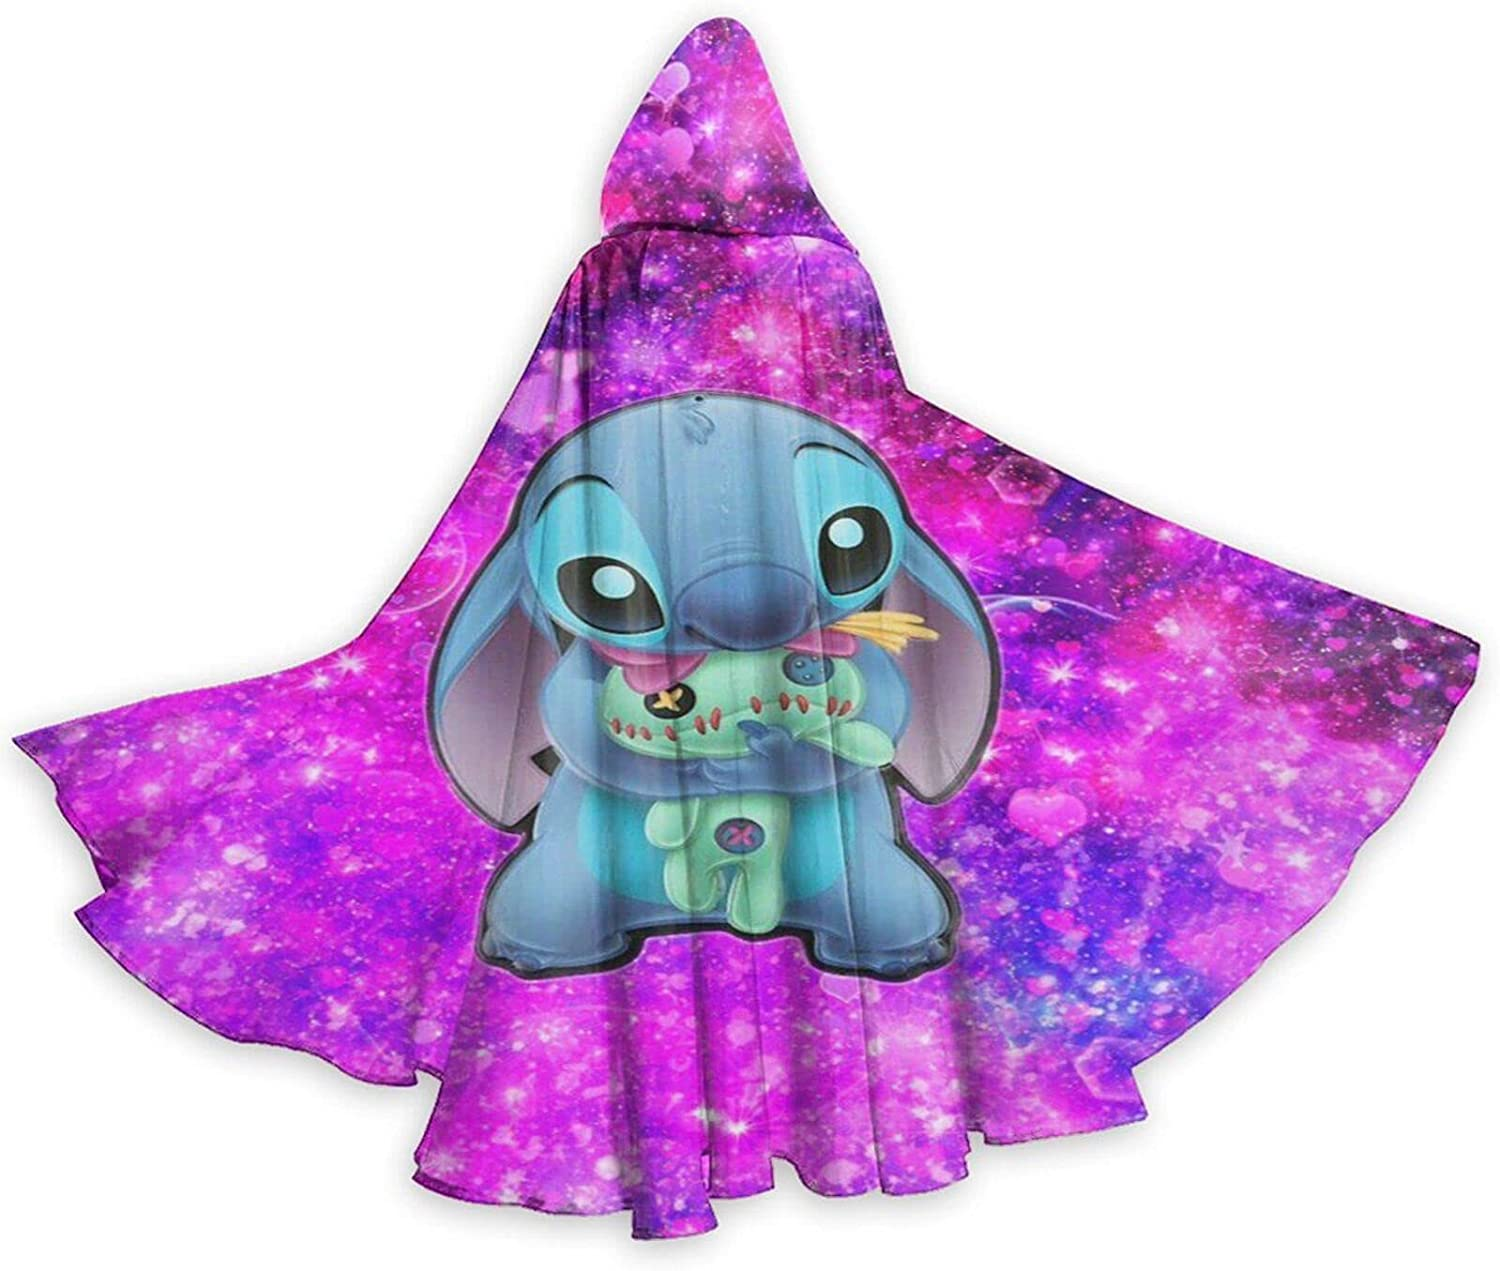 National uniform free shipping Unisex S-titch Hooded Halloween Wizard Costum Max 53% OFF Cosplay Robe Cloak